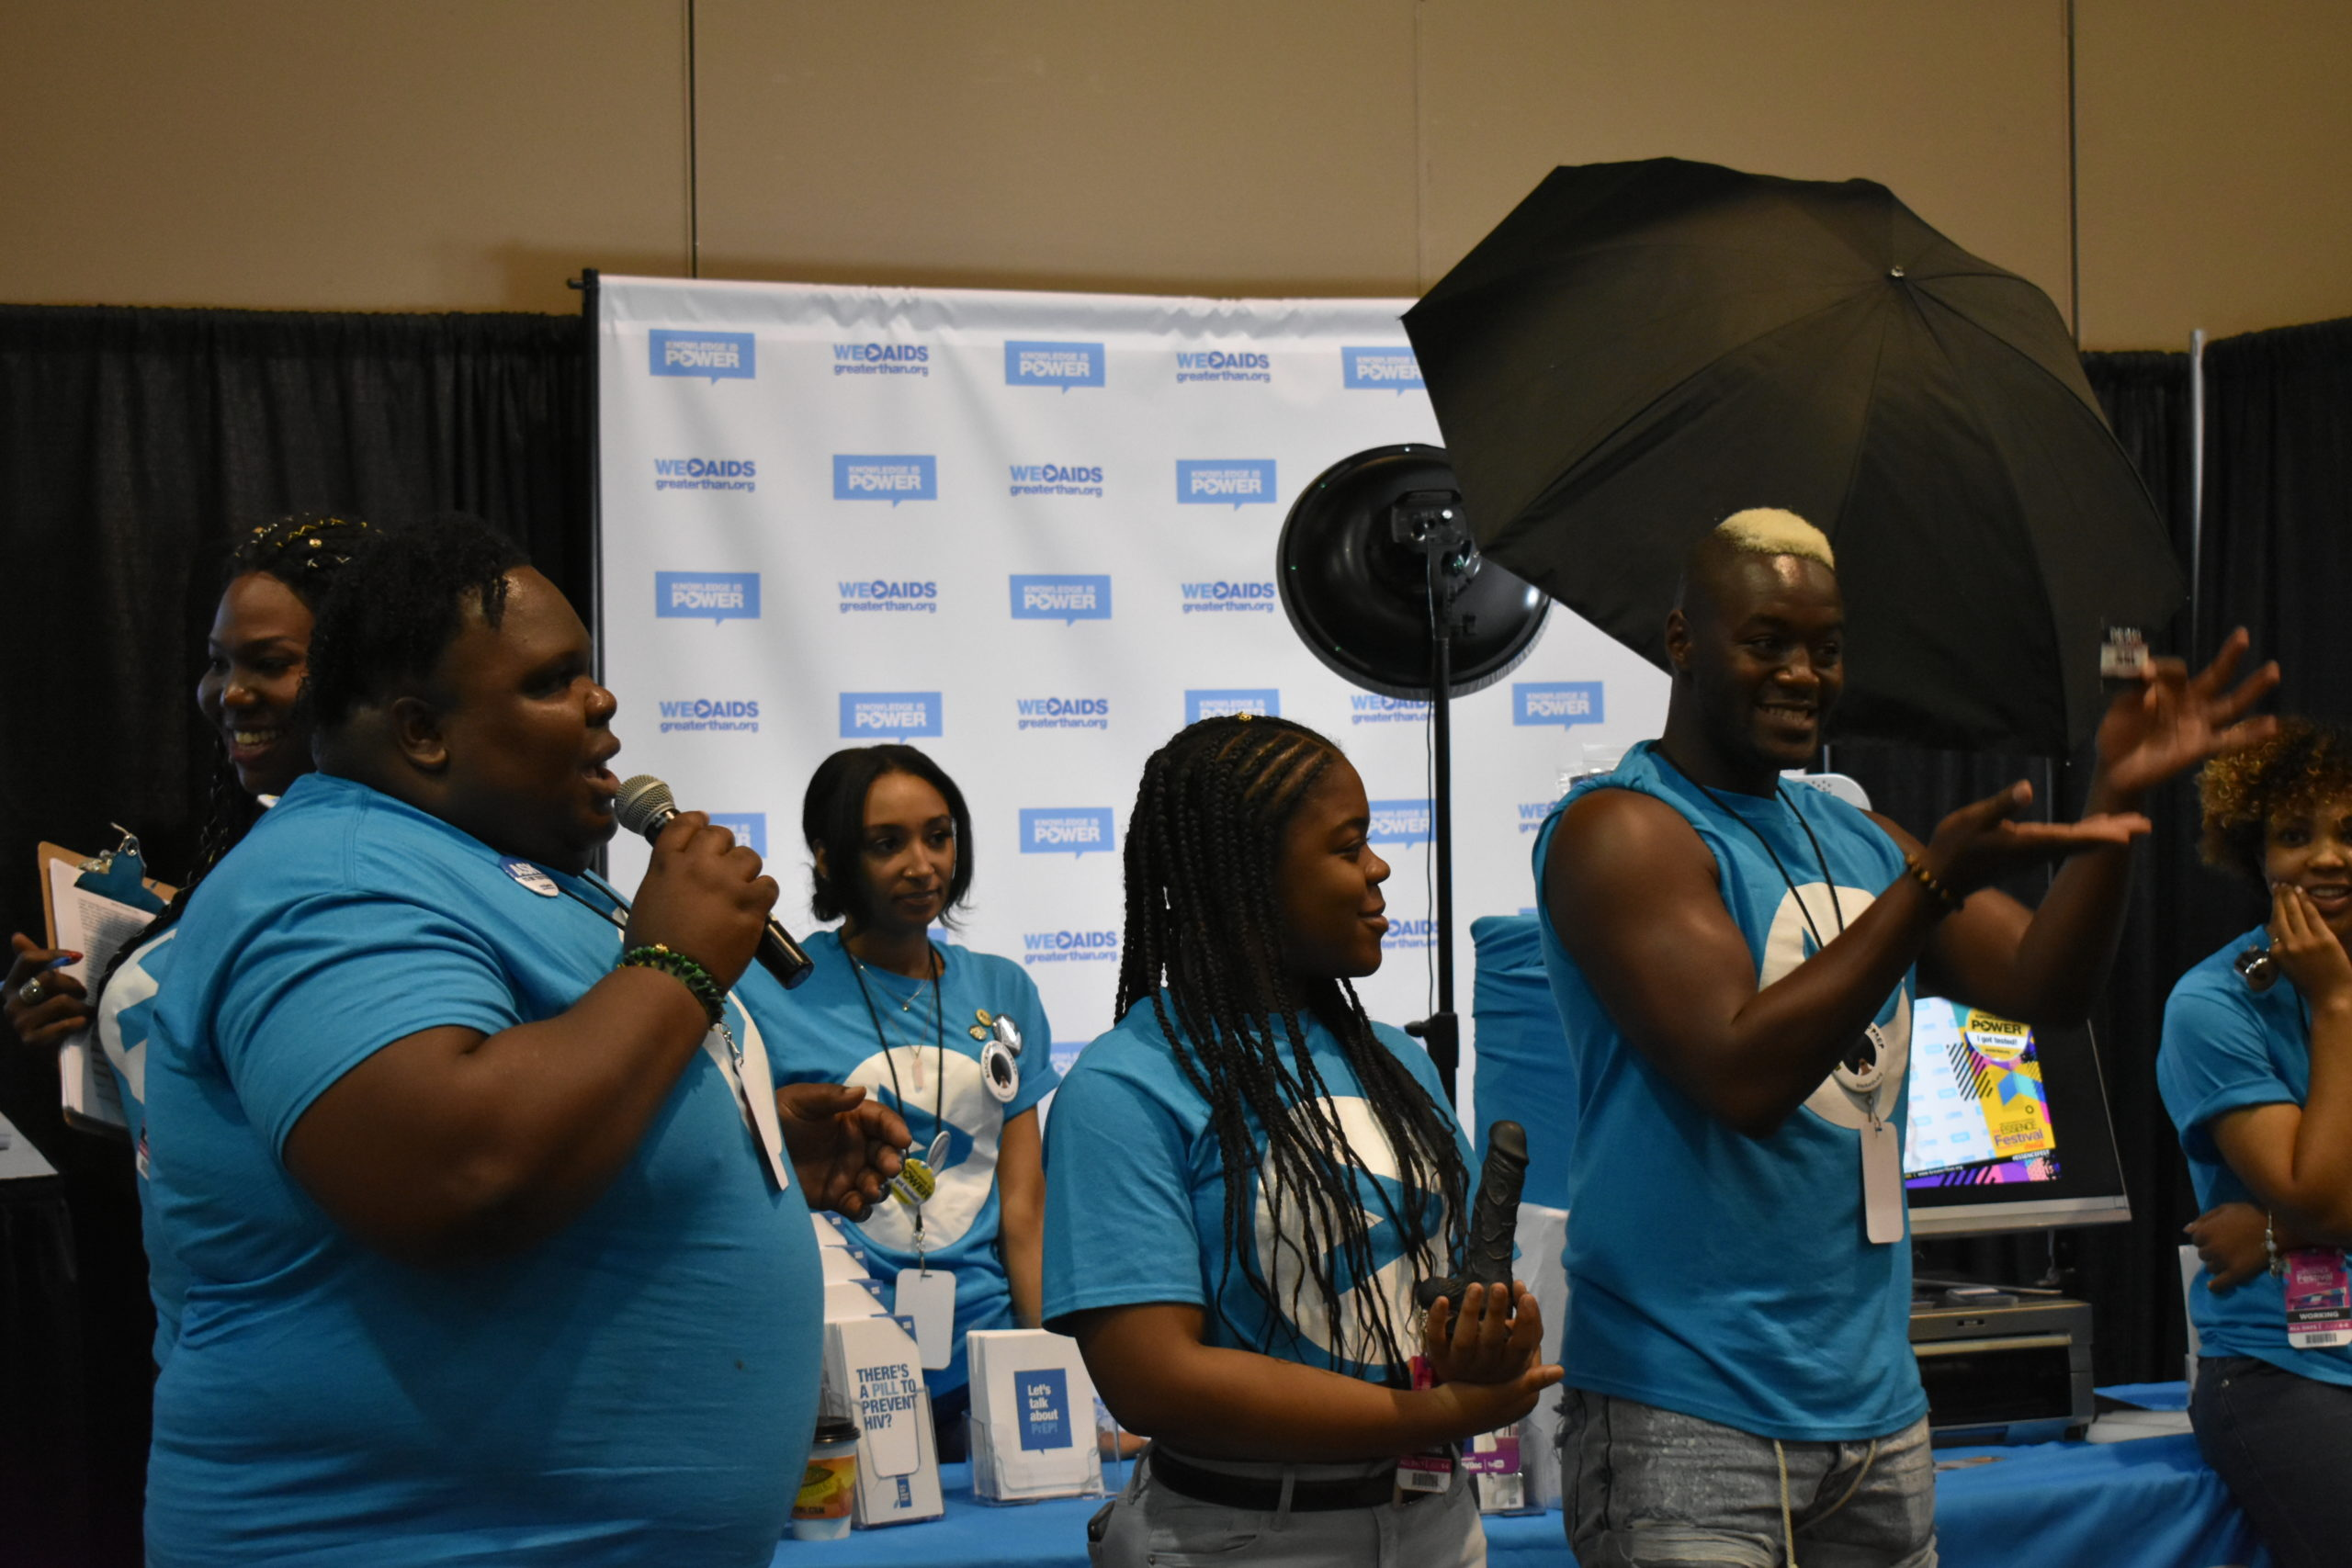 Smiling people at #ESSENCEFest 2018 in blue GTA shirts